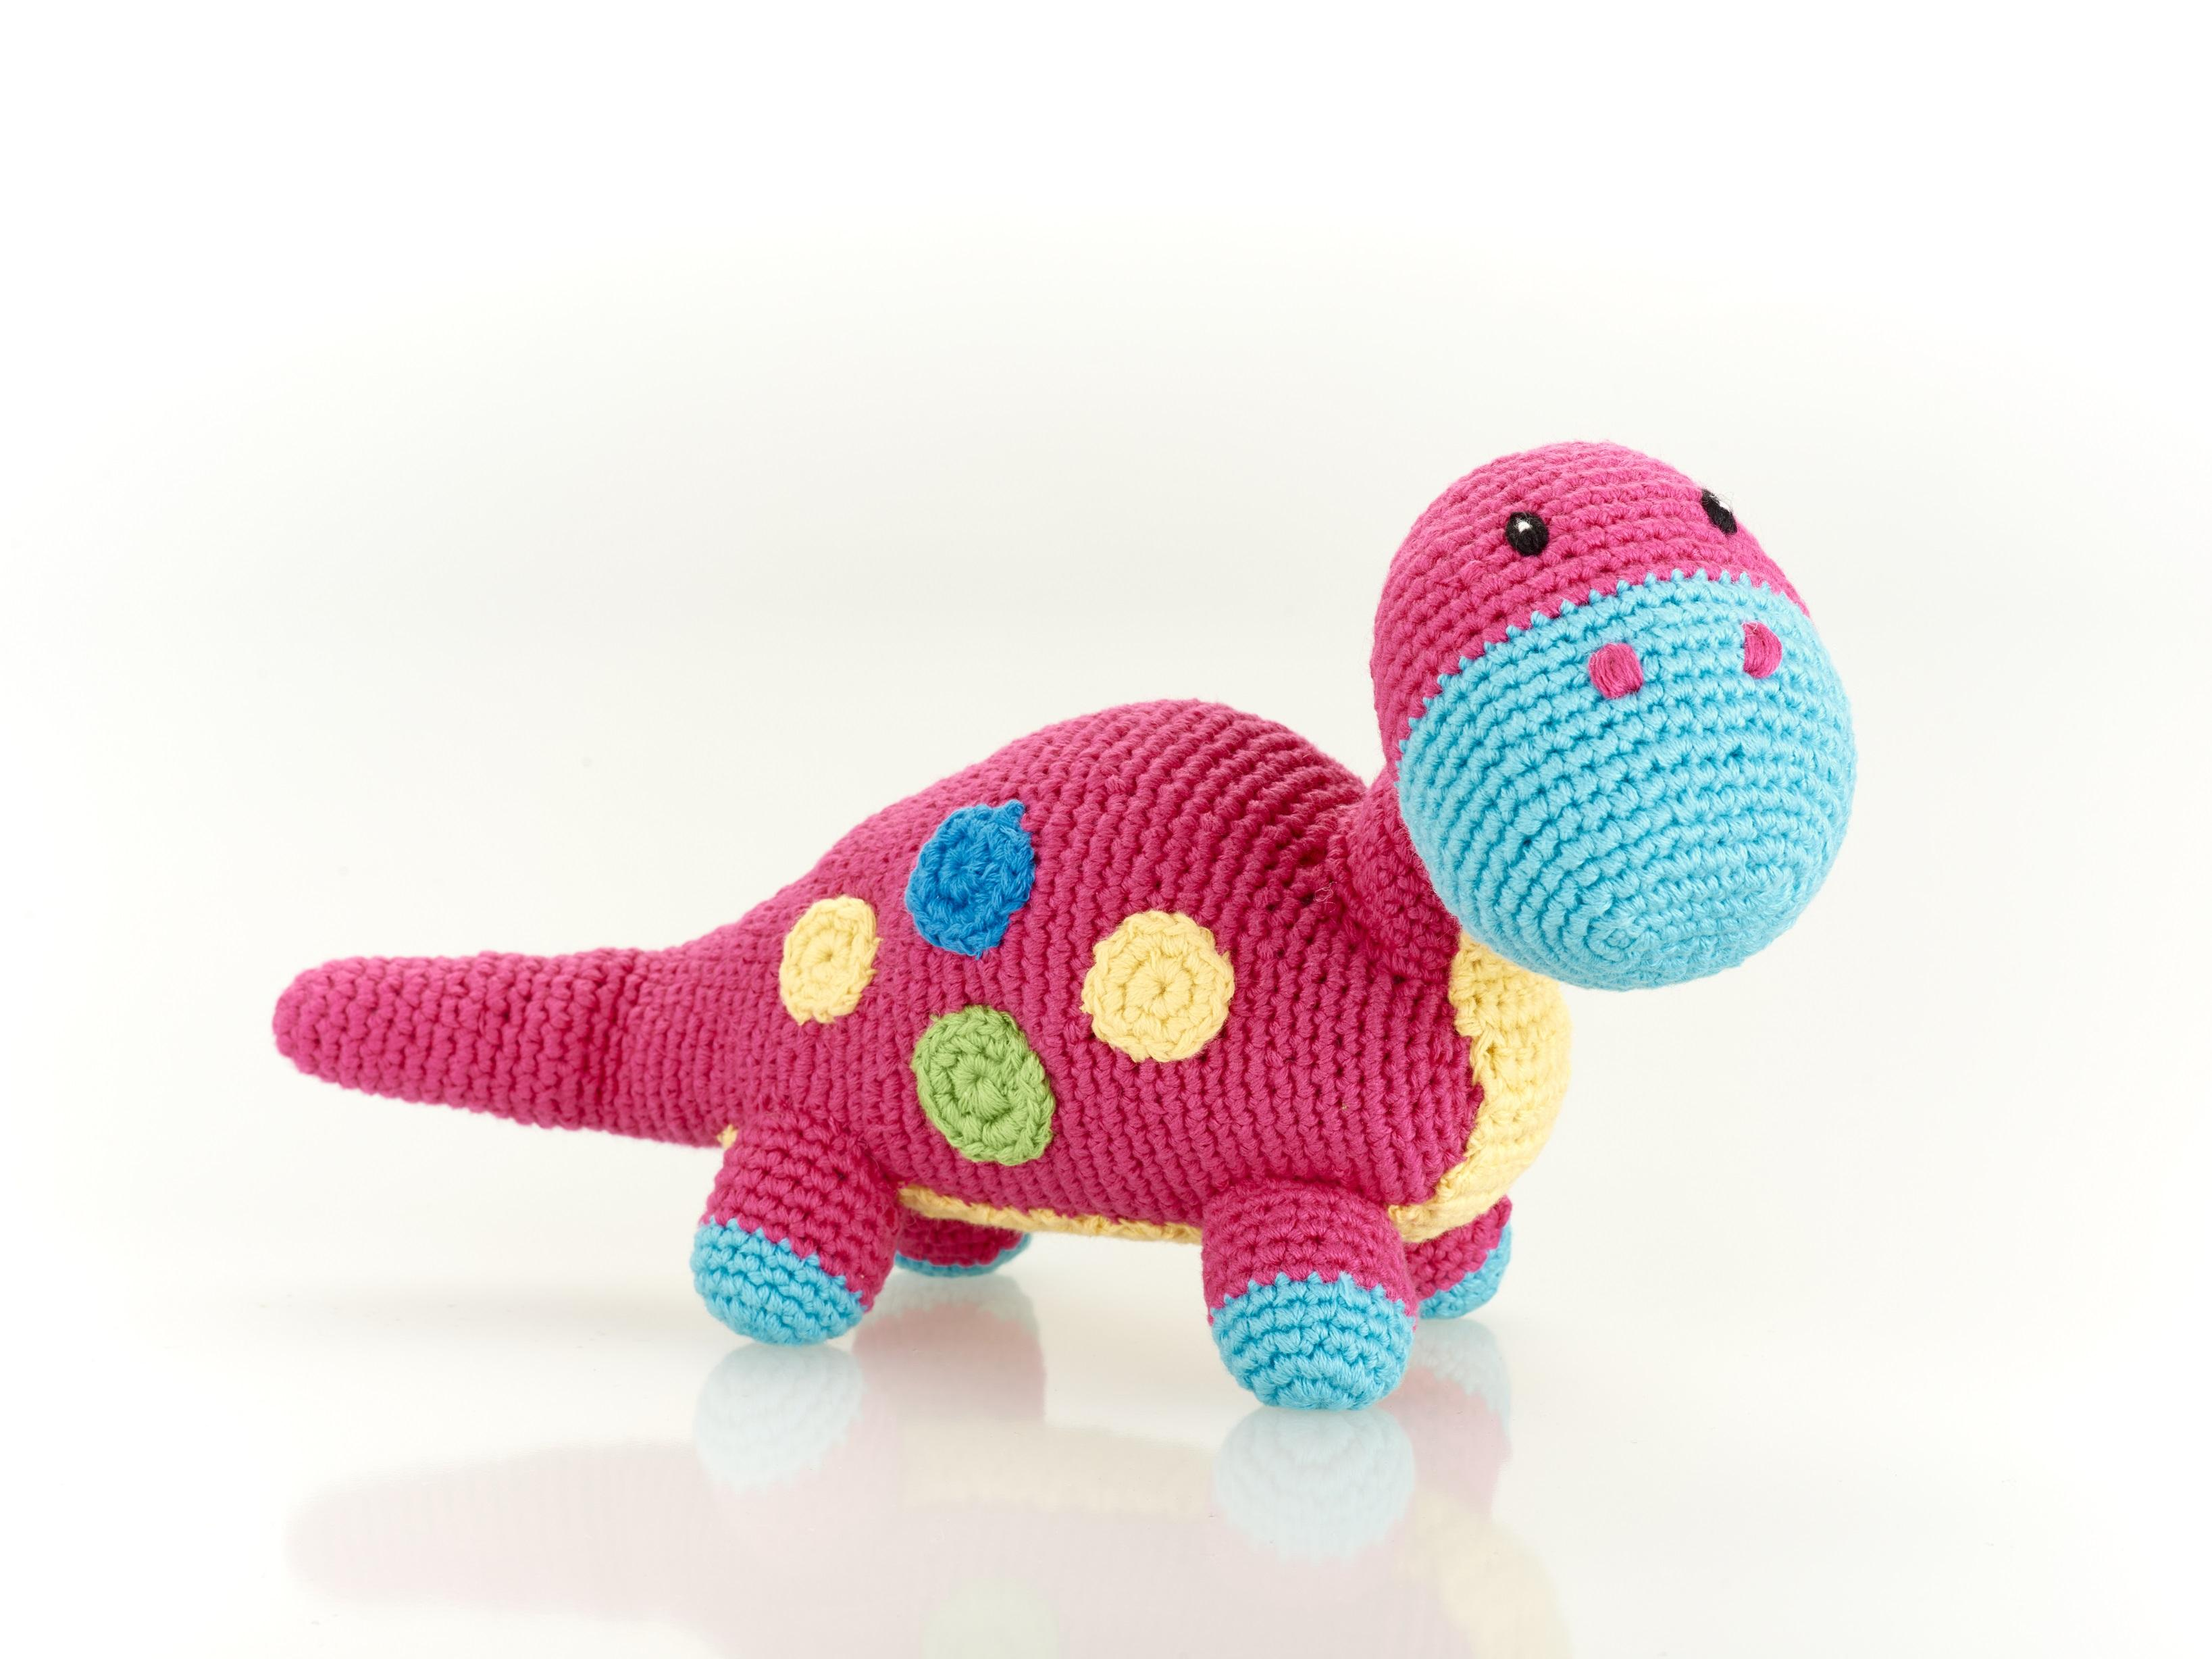 Fair Trade Cotton Baby Dinosaur Toy, pink steggi rattle